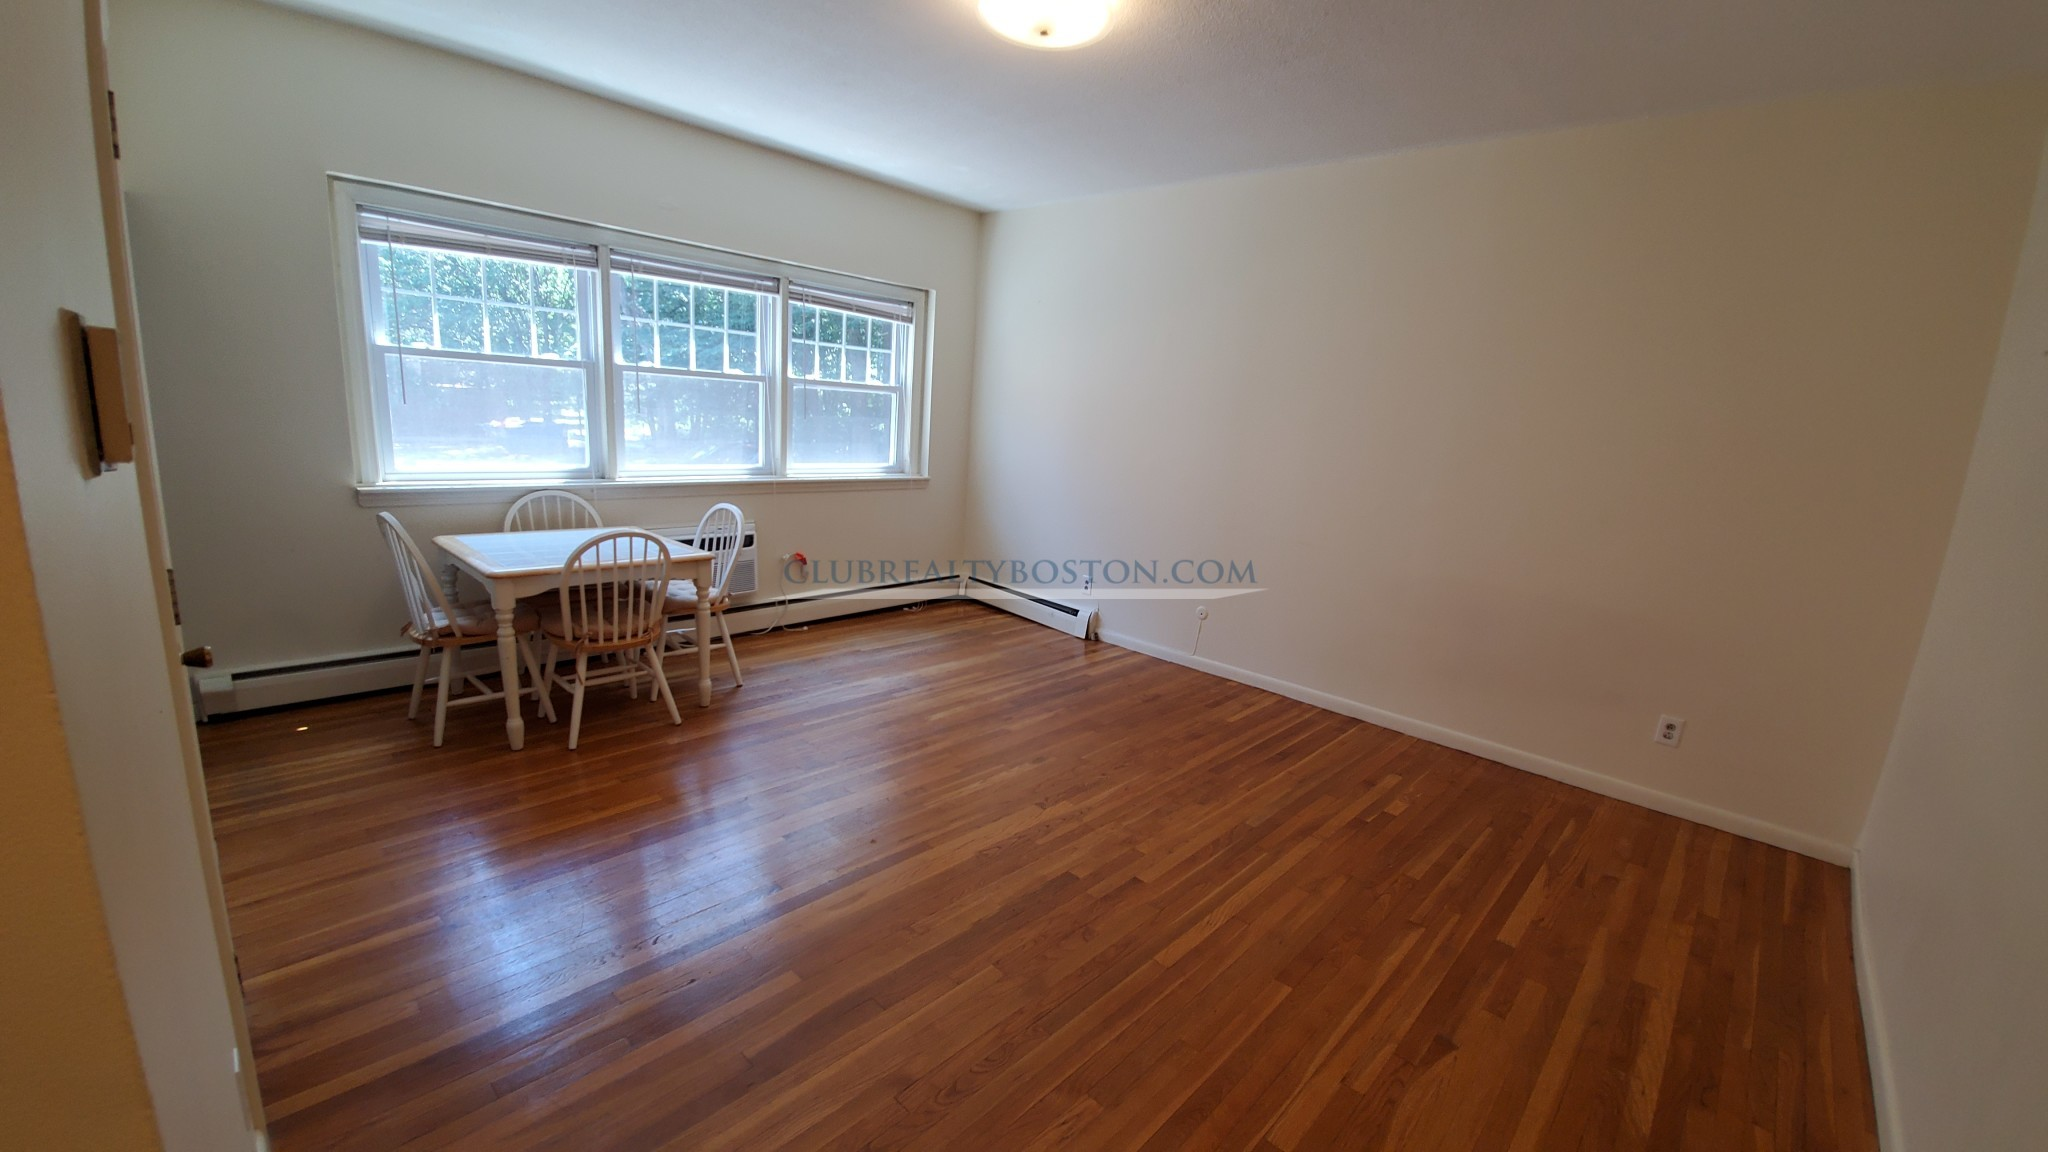 1 bed Browstone on Comm Ave by Boston College w Heat included